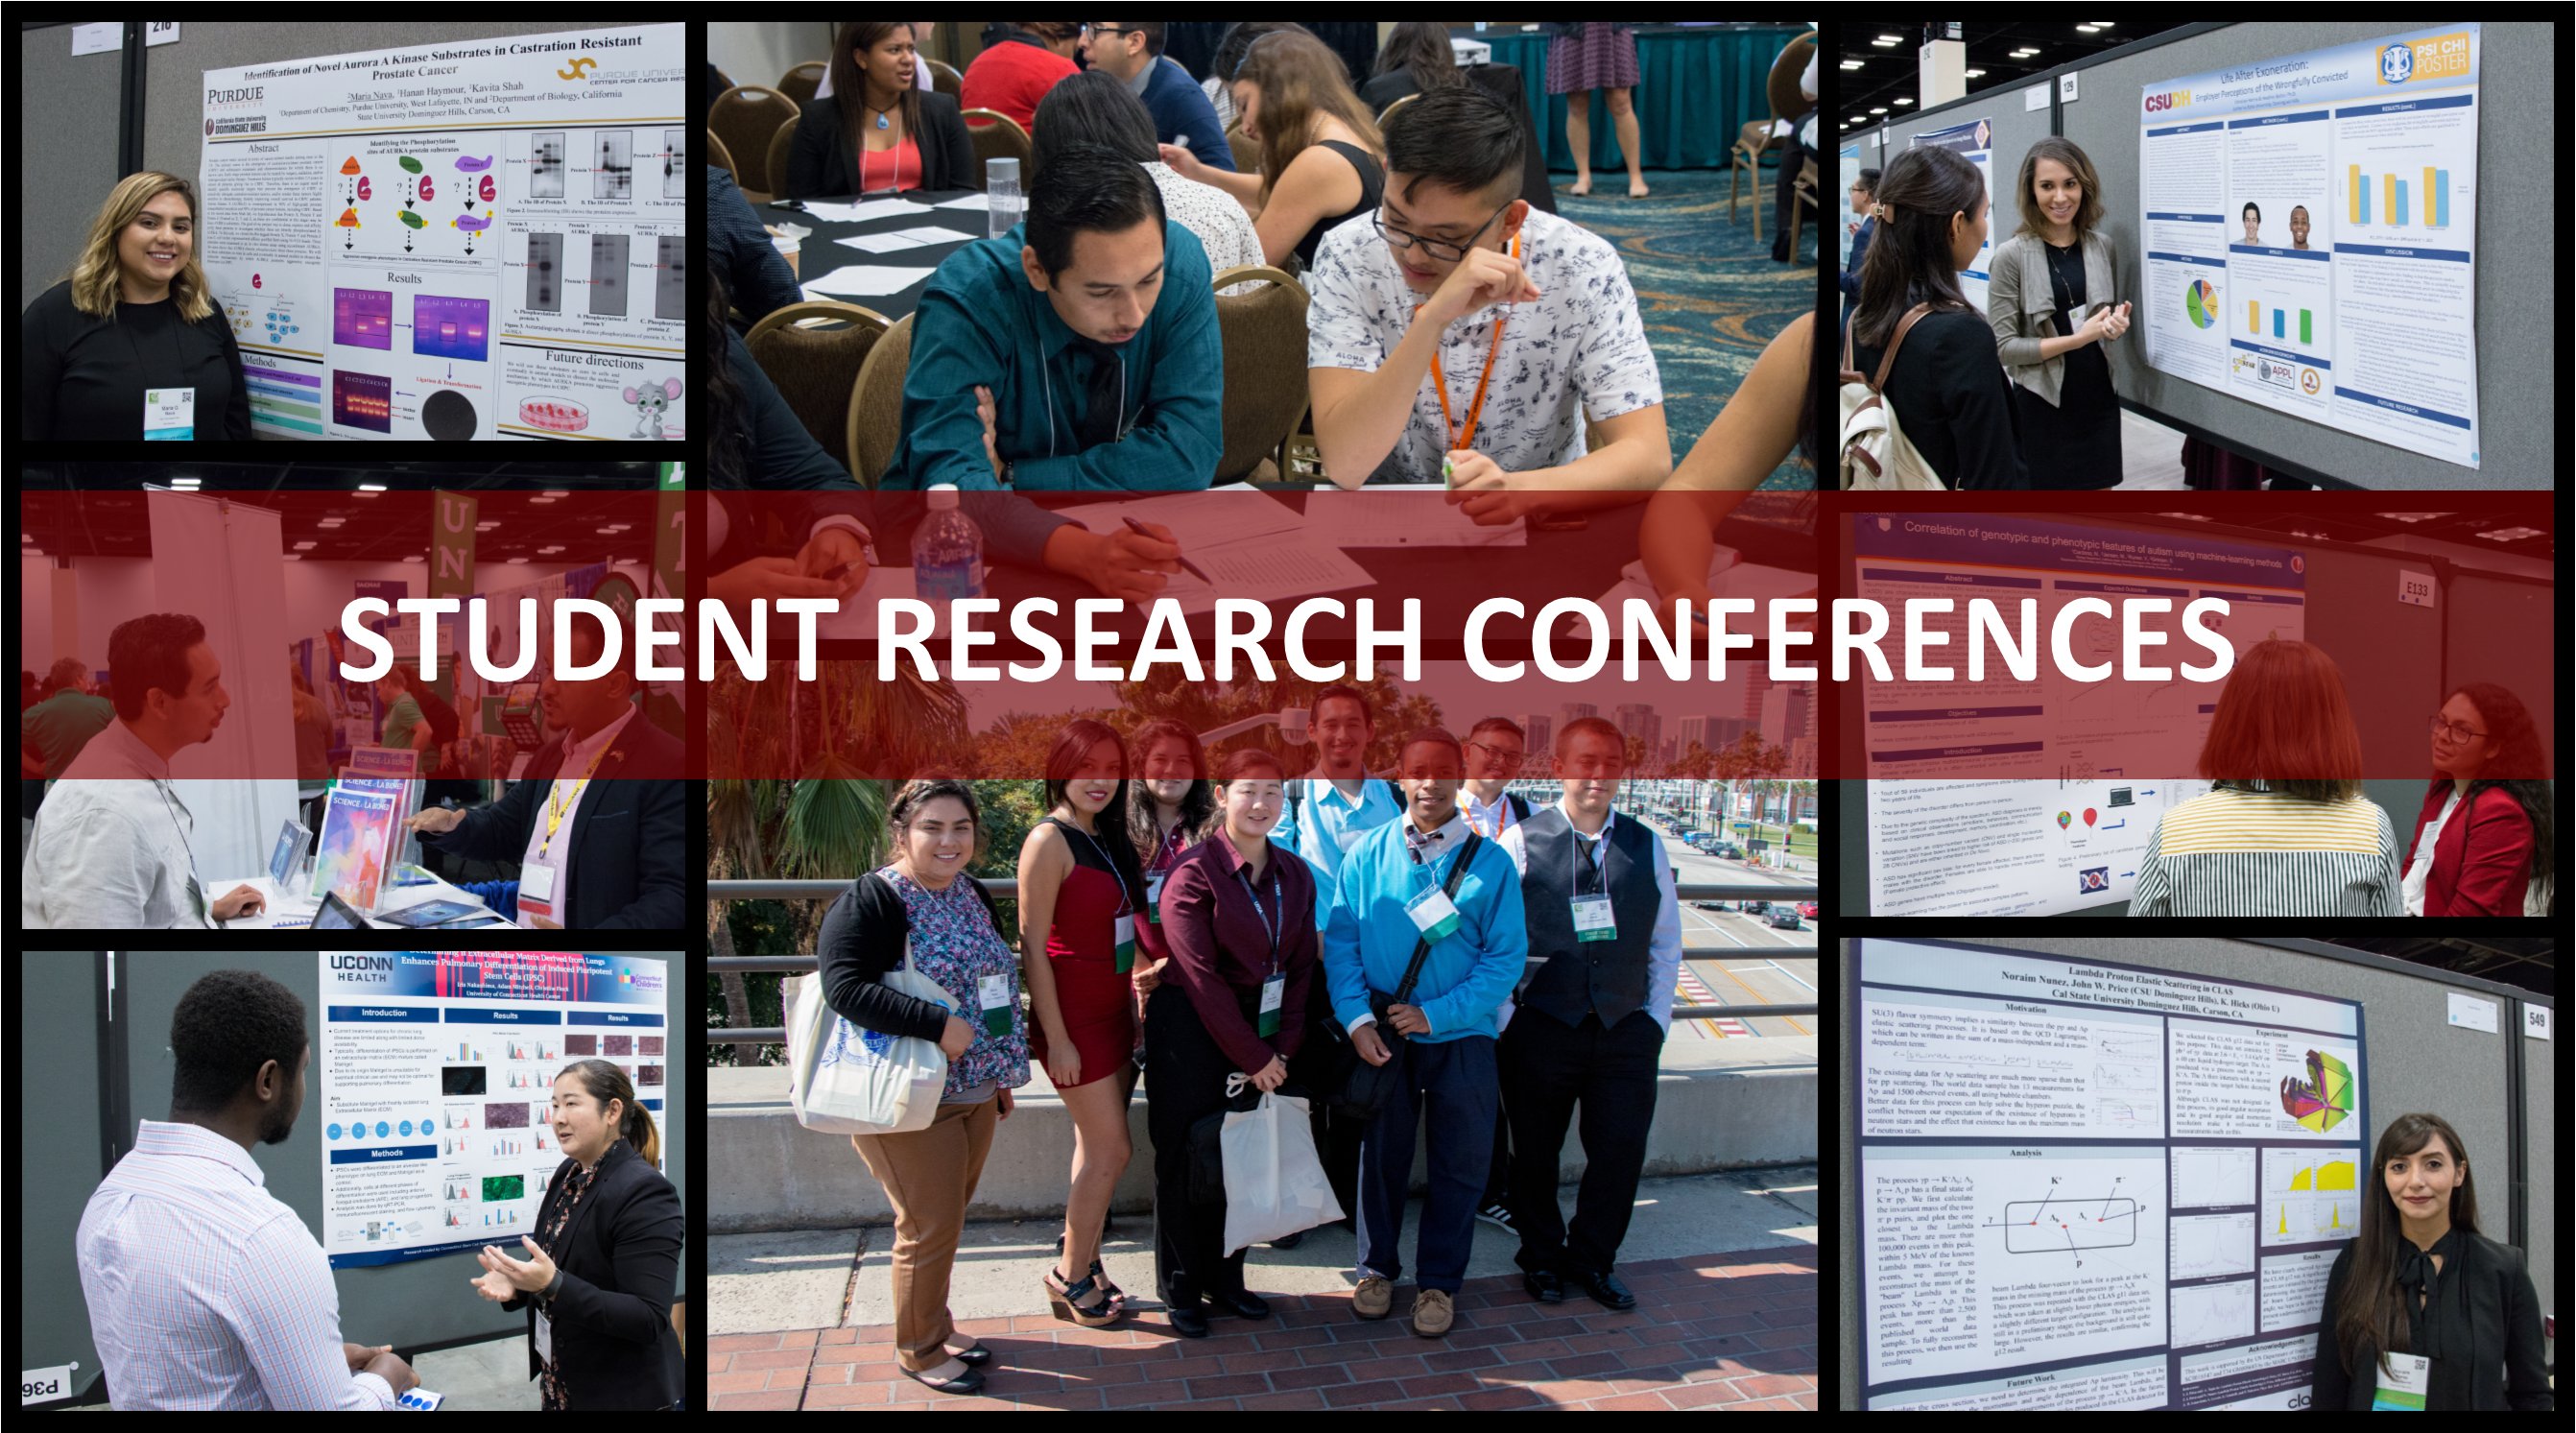 Student Research Conferences